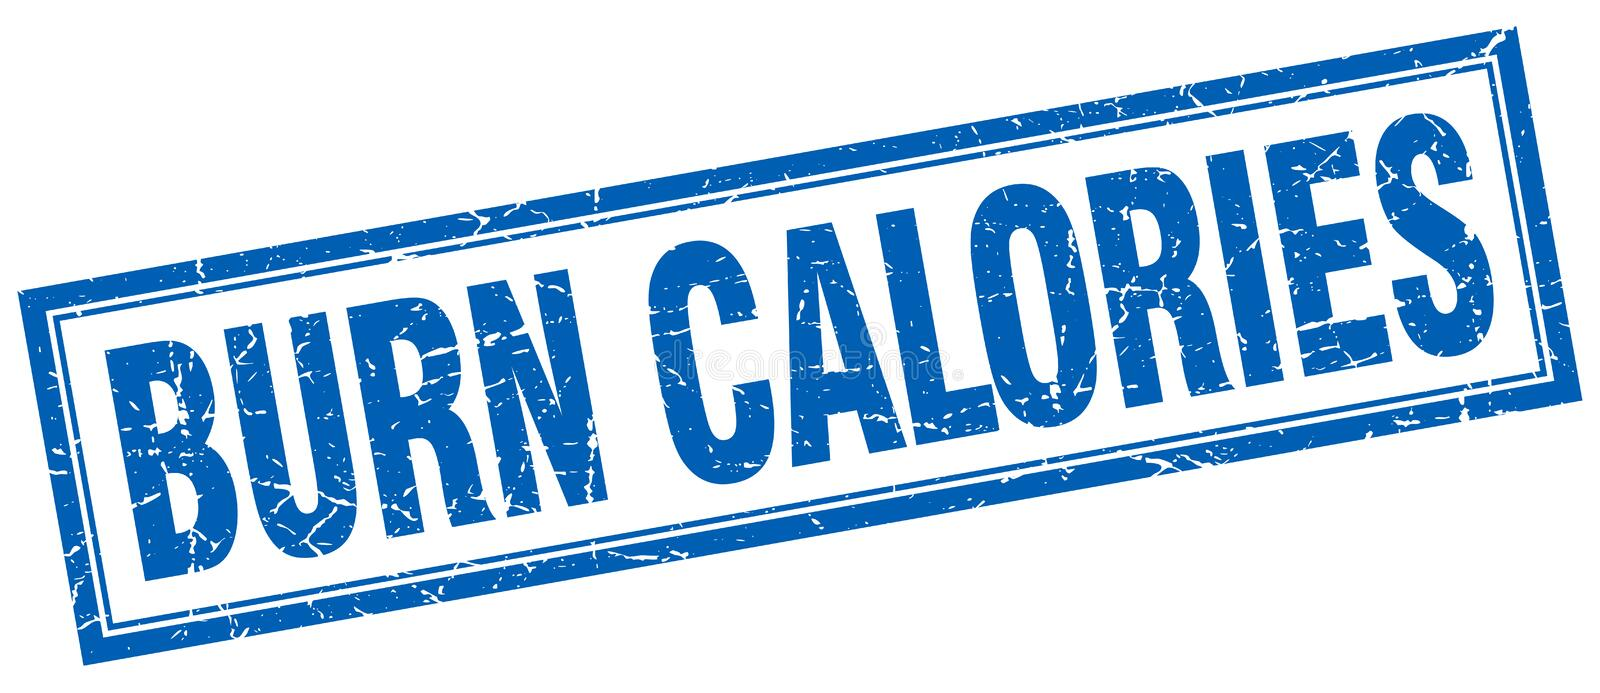 Timbre de calories de brûlure illustration stock